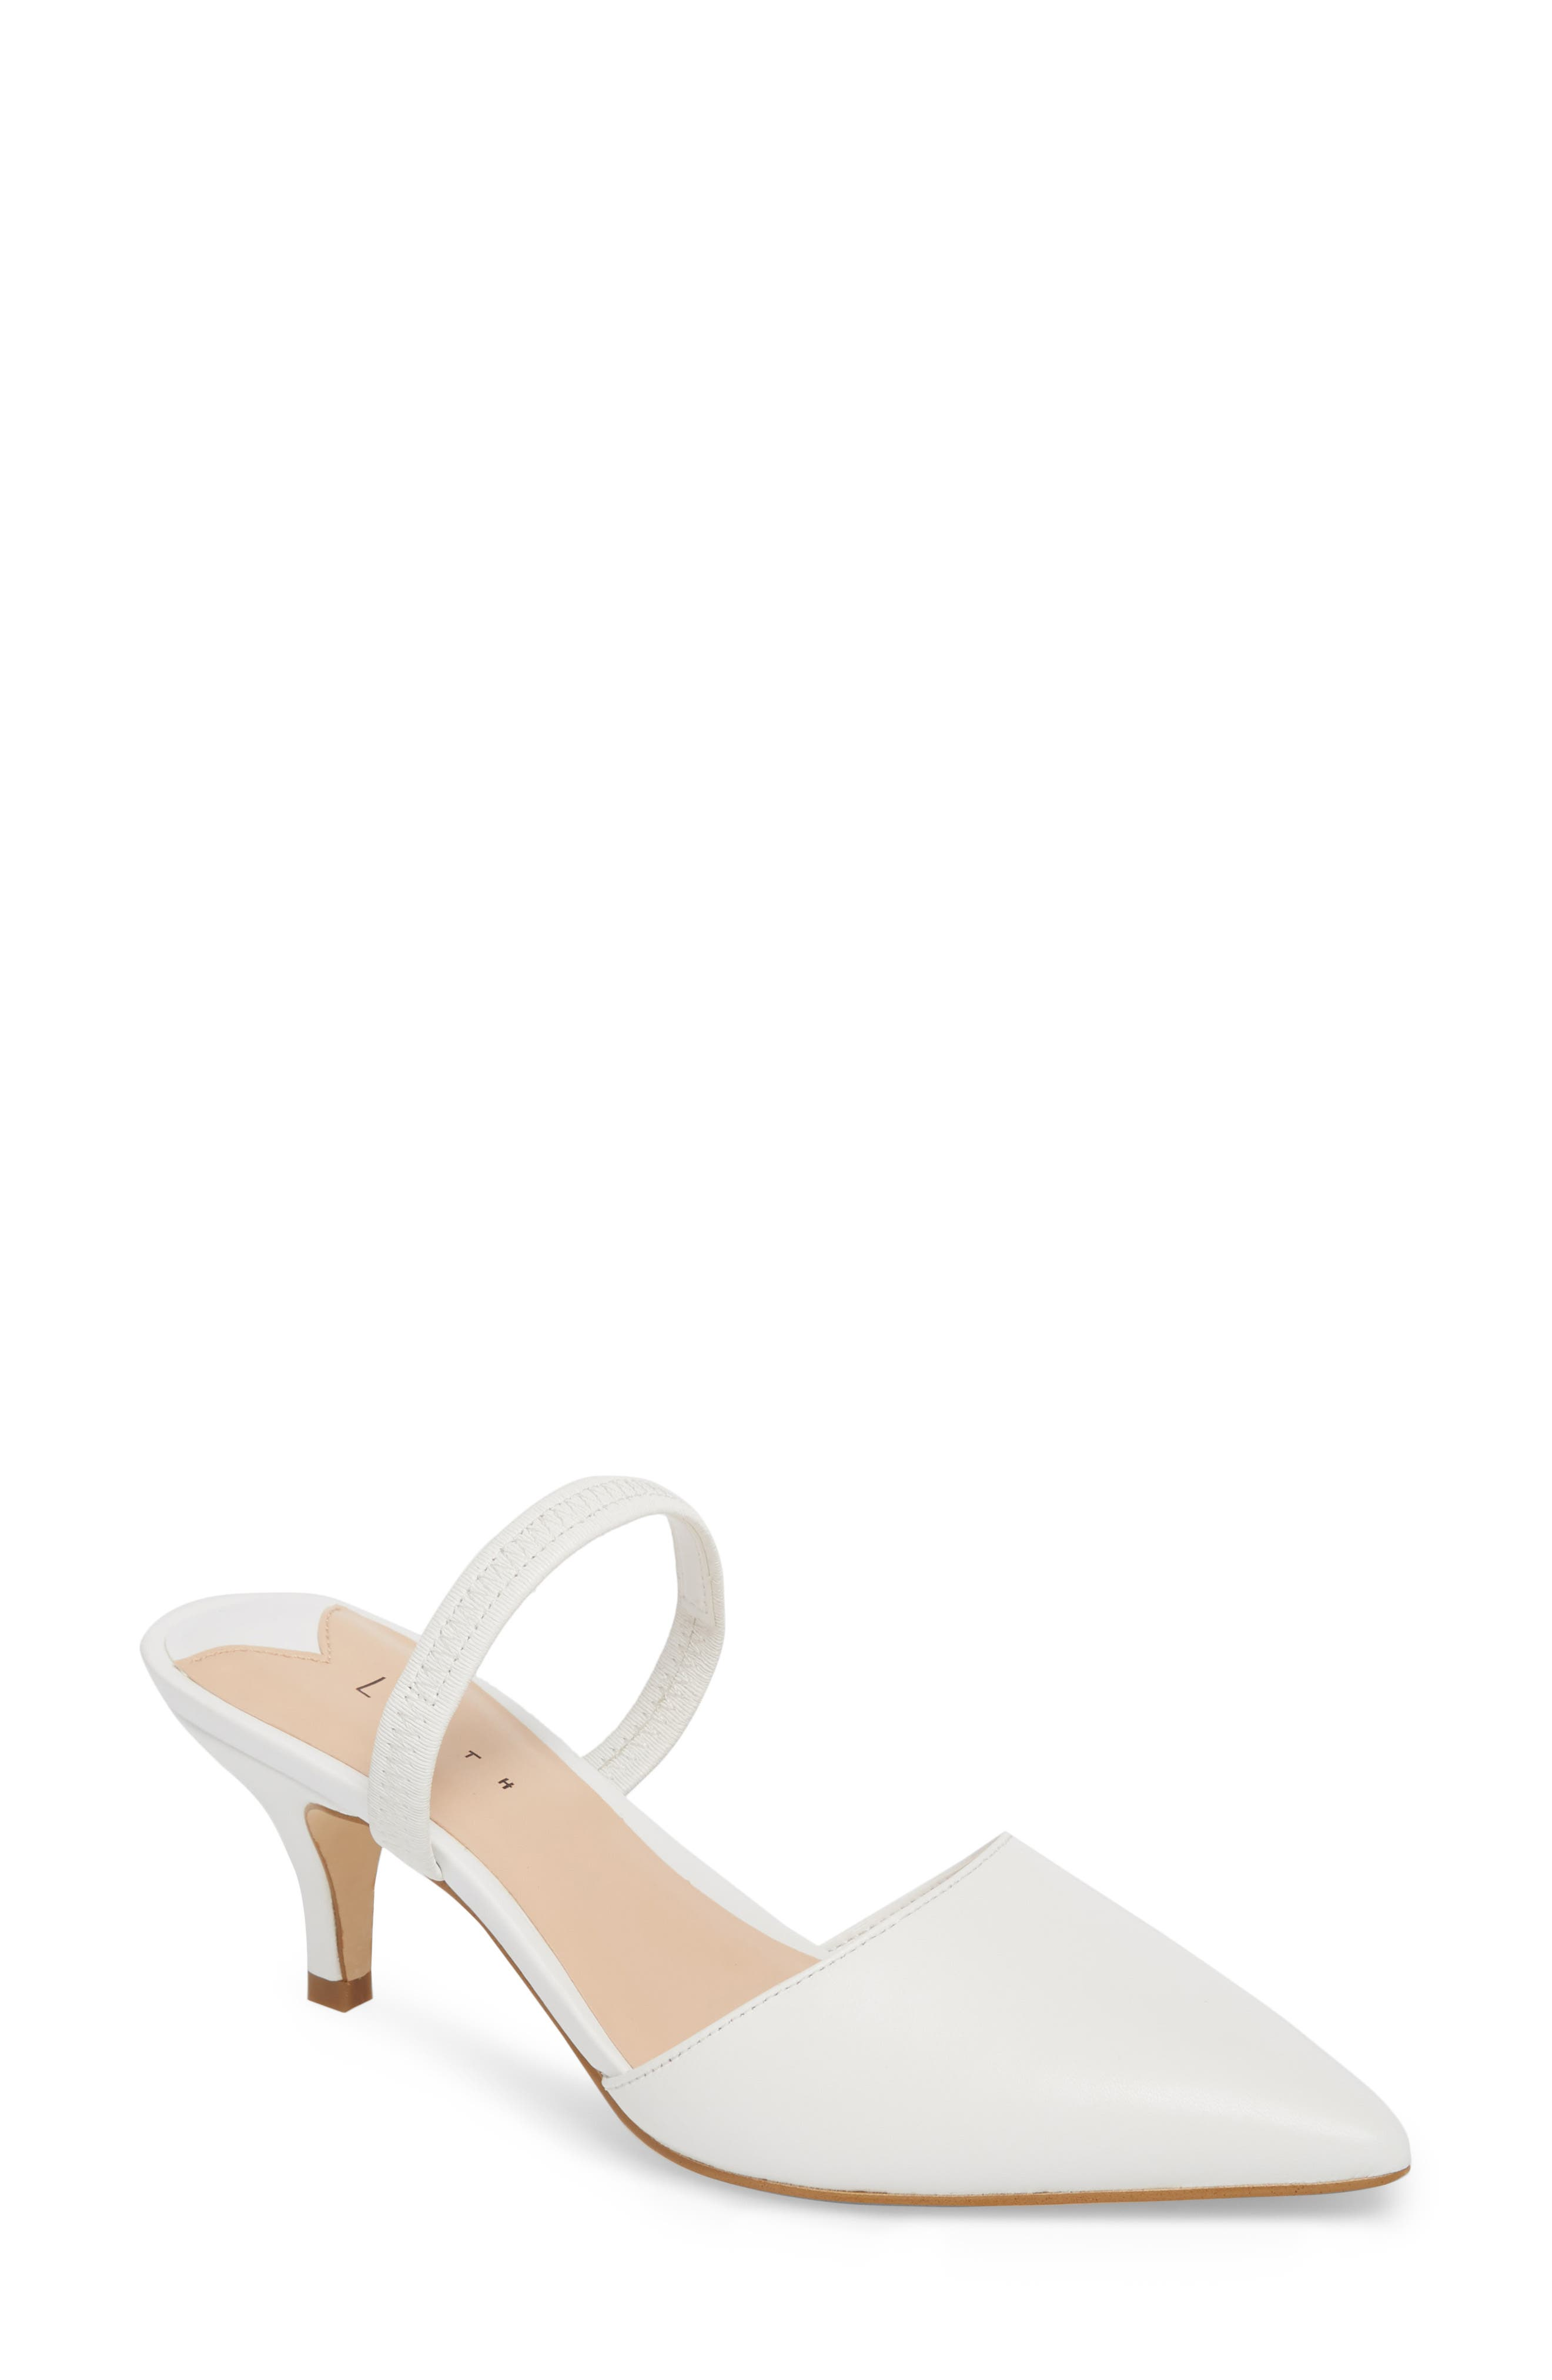 Nikki Convertible Pump,                         Main,                         color, WHITE LEATHER